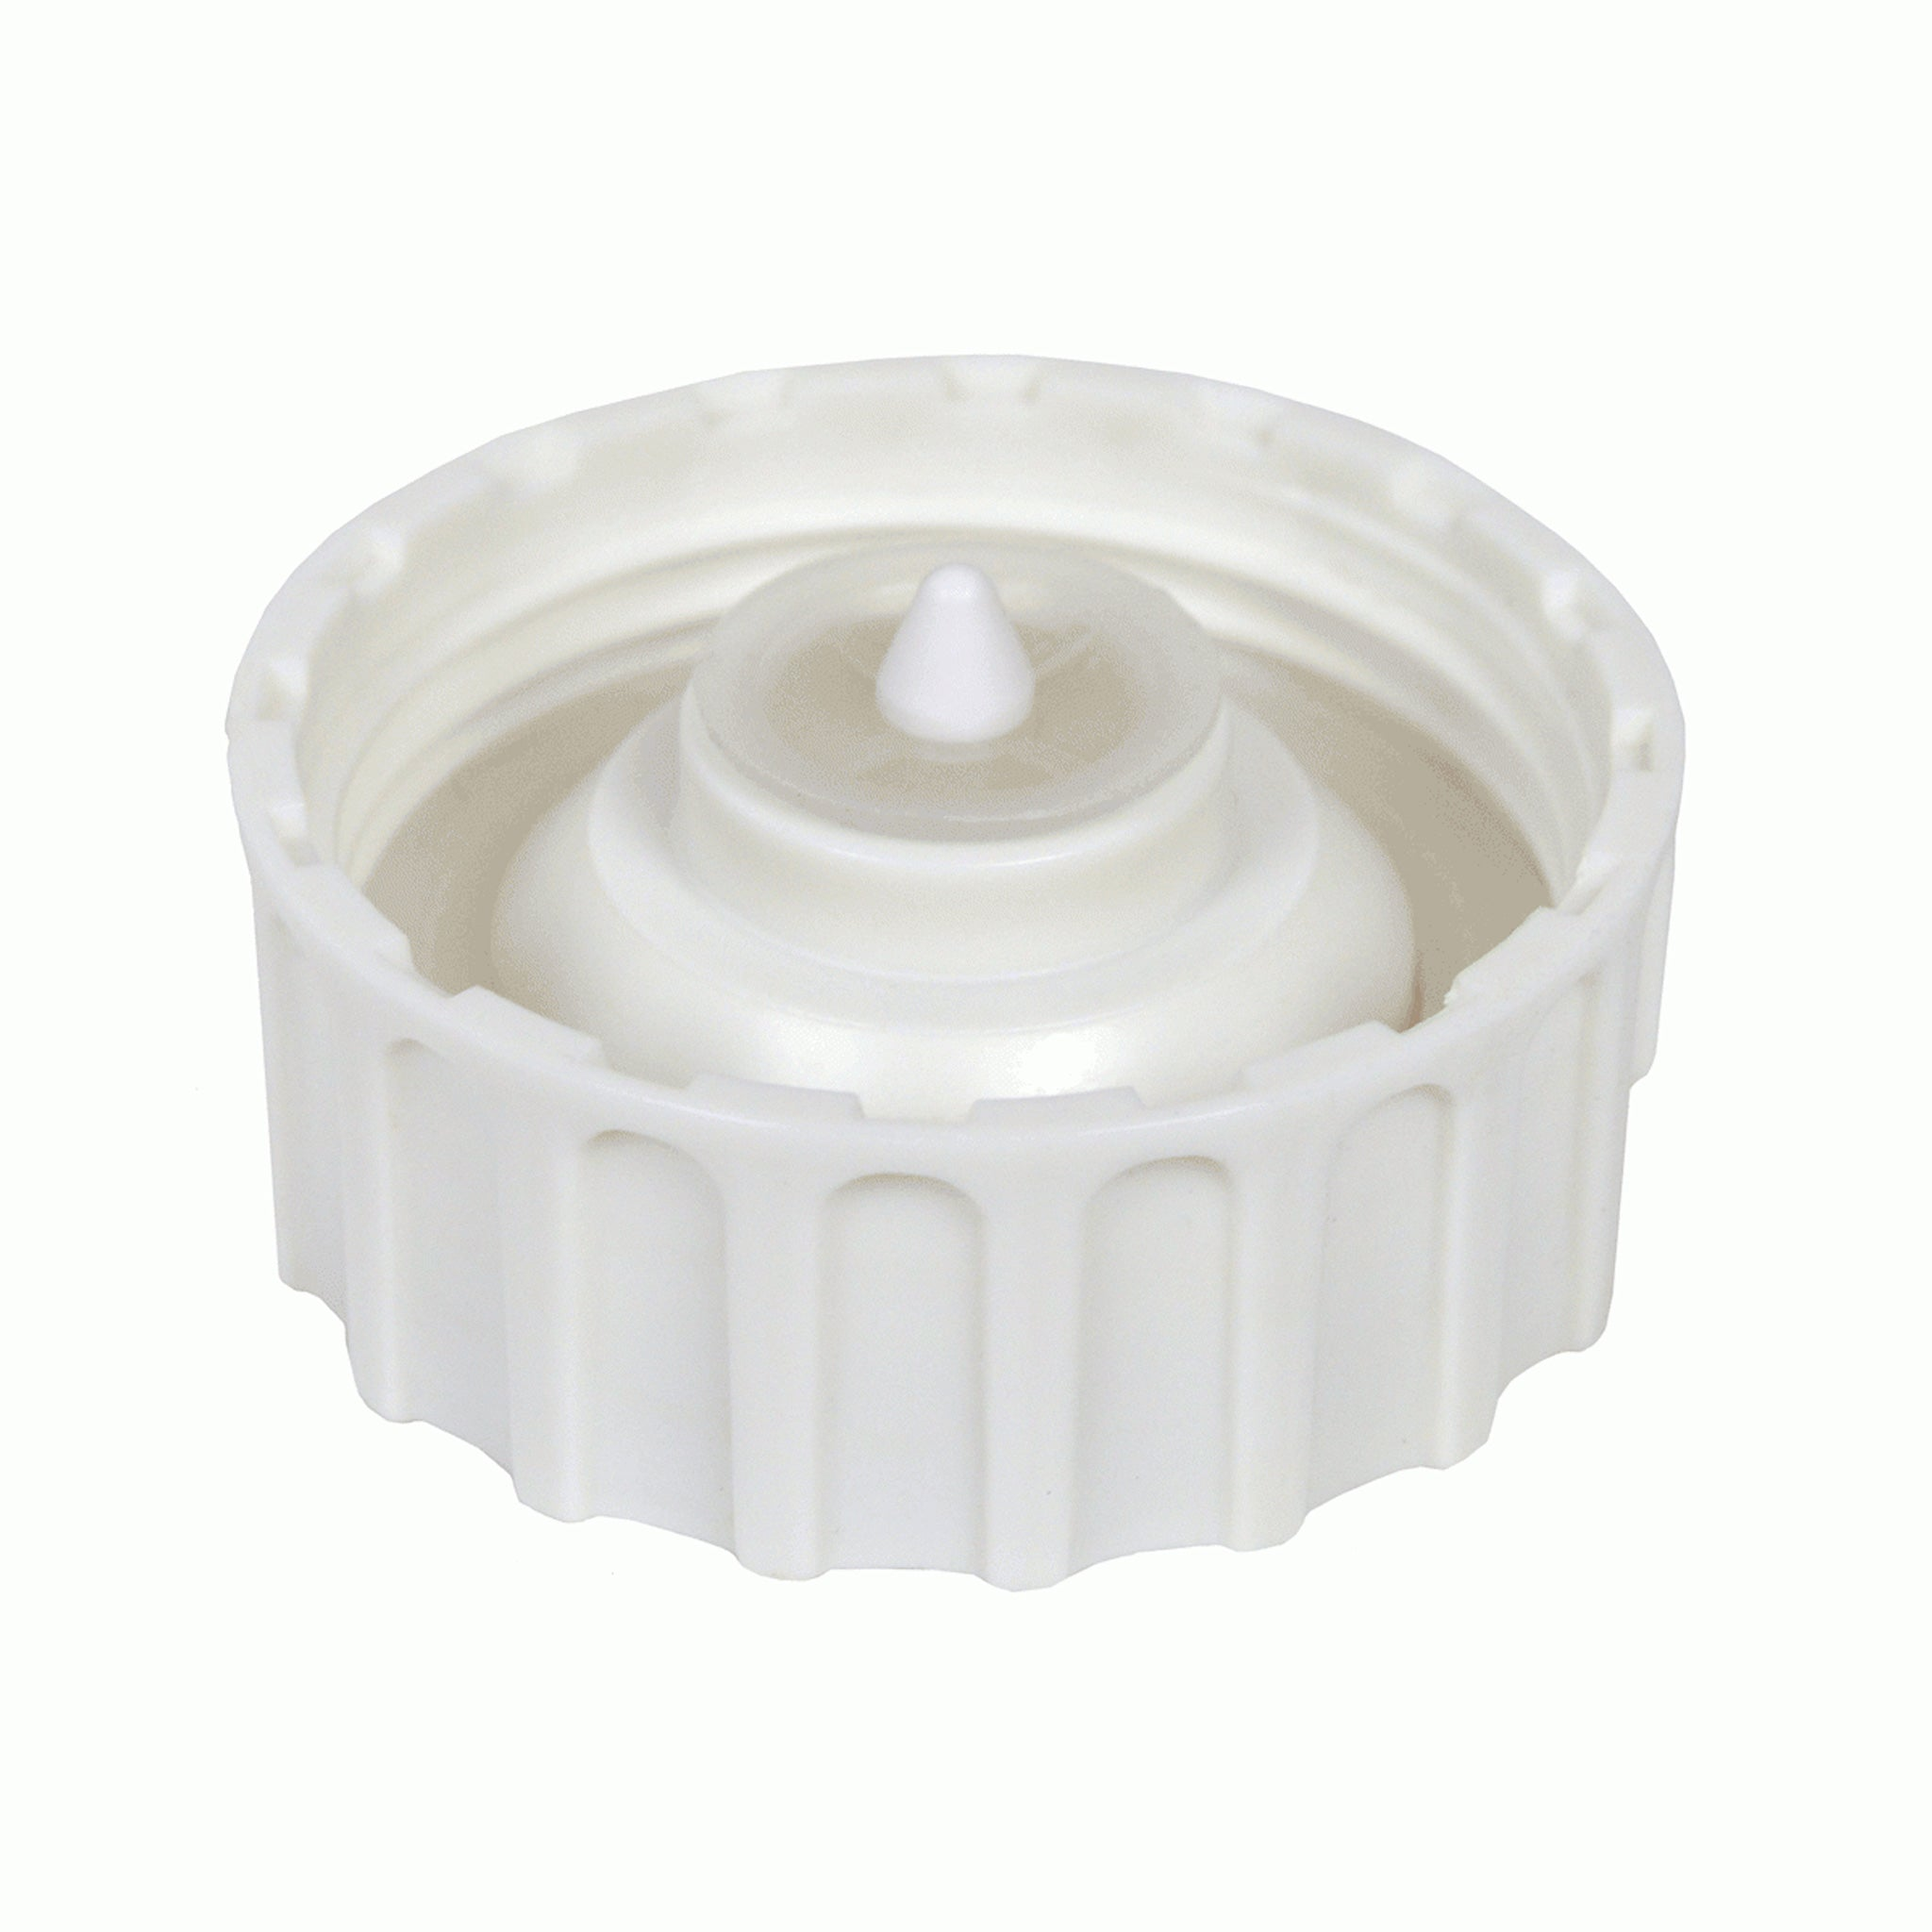 Water Tank Cap Assembly HU15 for Humio Humidifer HU-1020A - Tribest